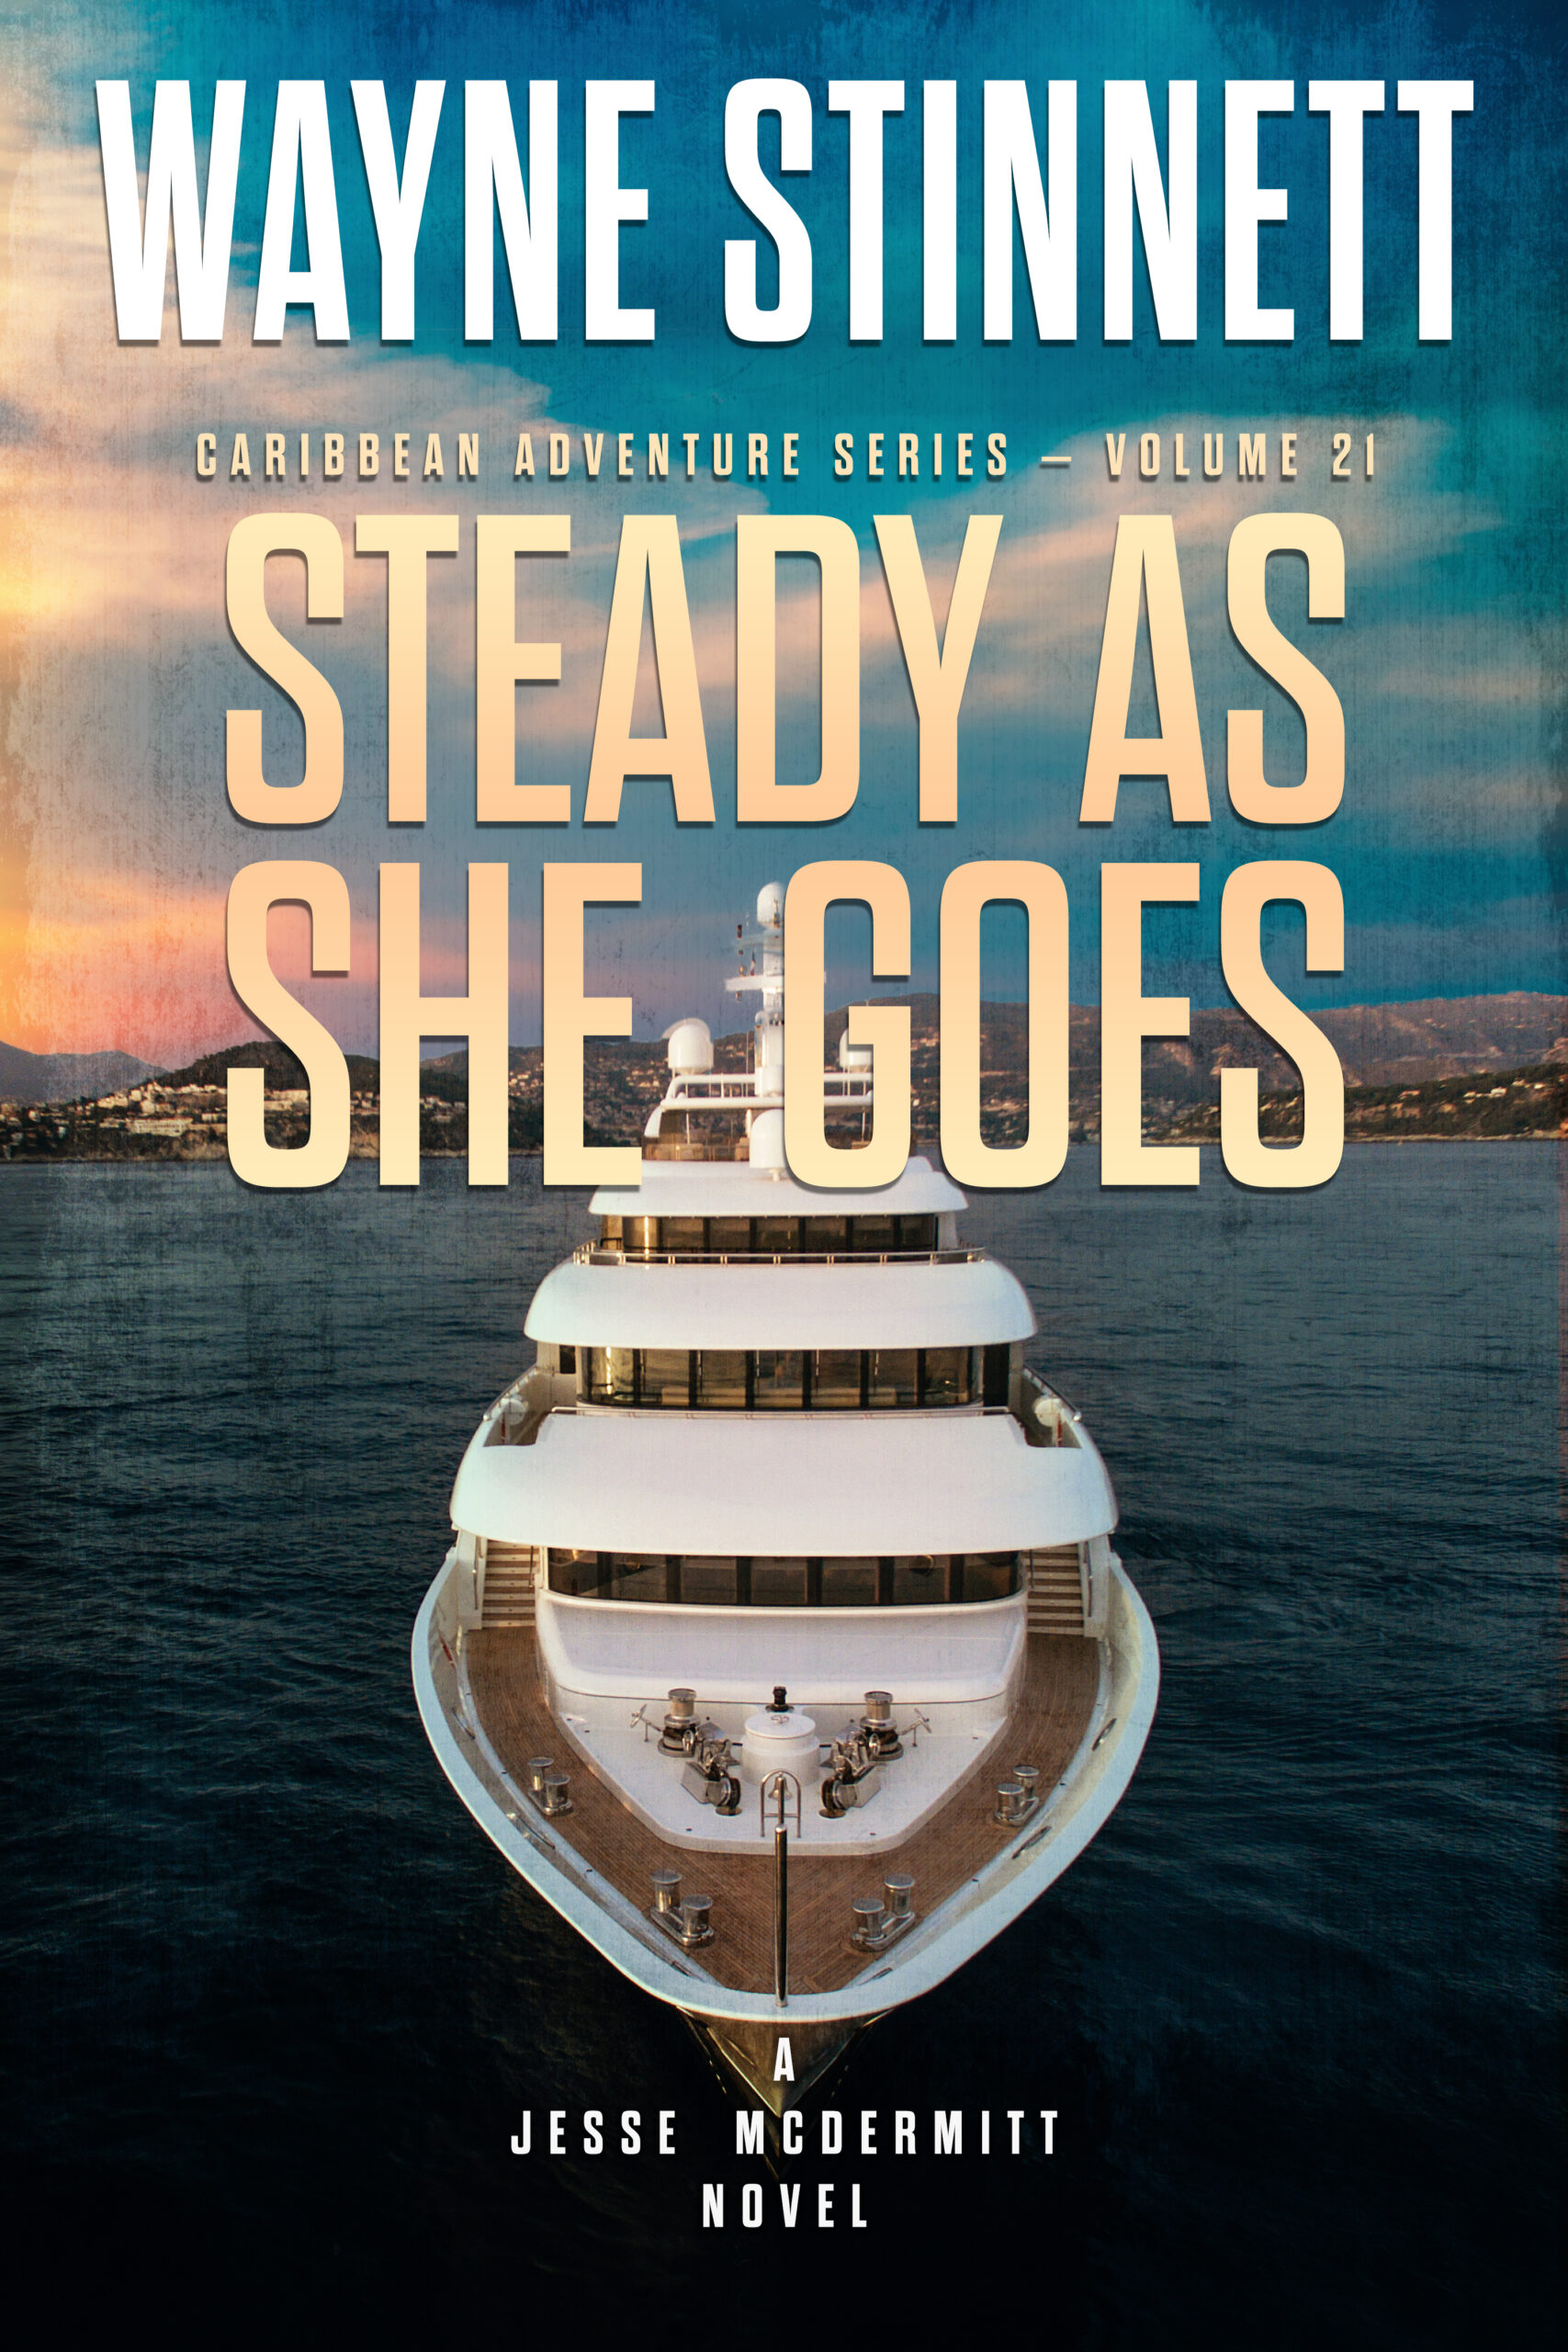 Book Cover of As Steady As She Goes by Wayne Stinnett